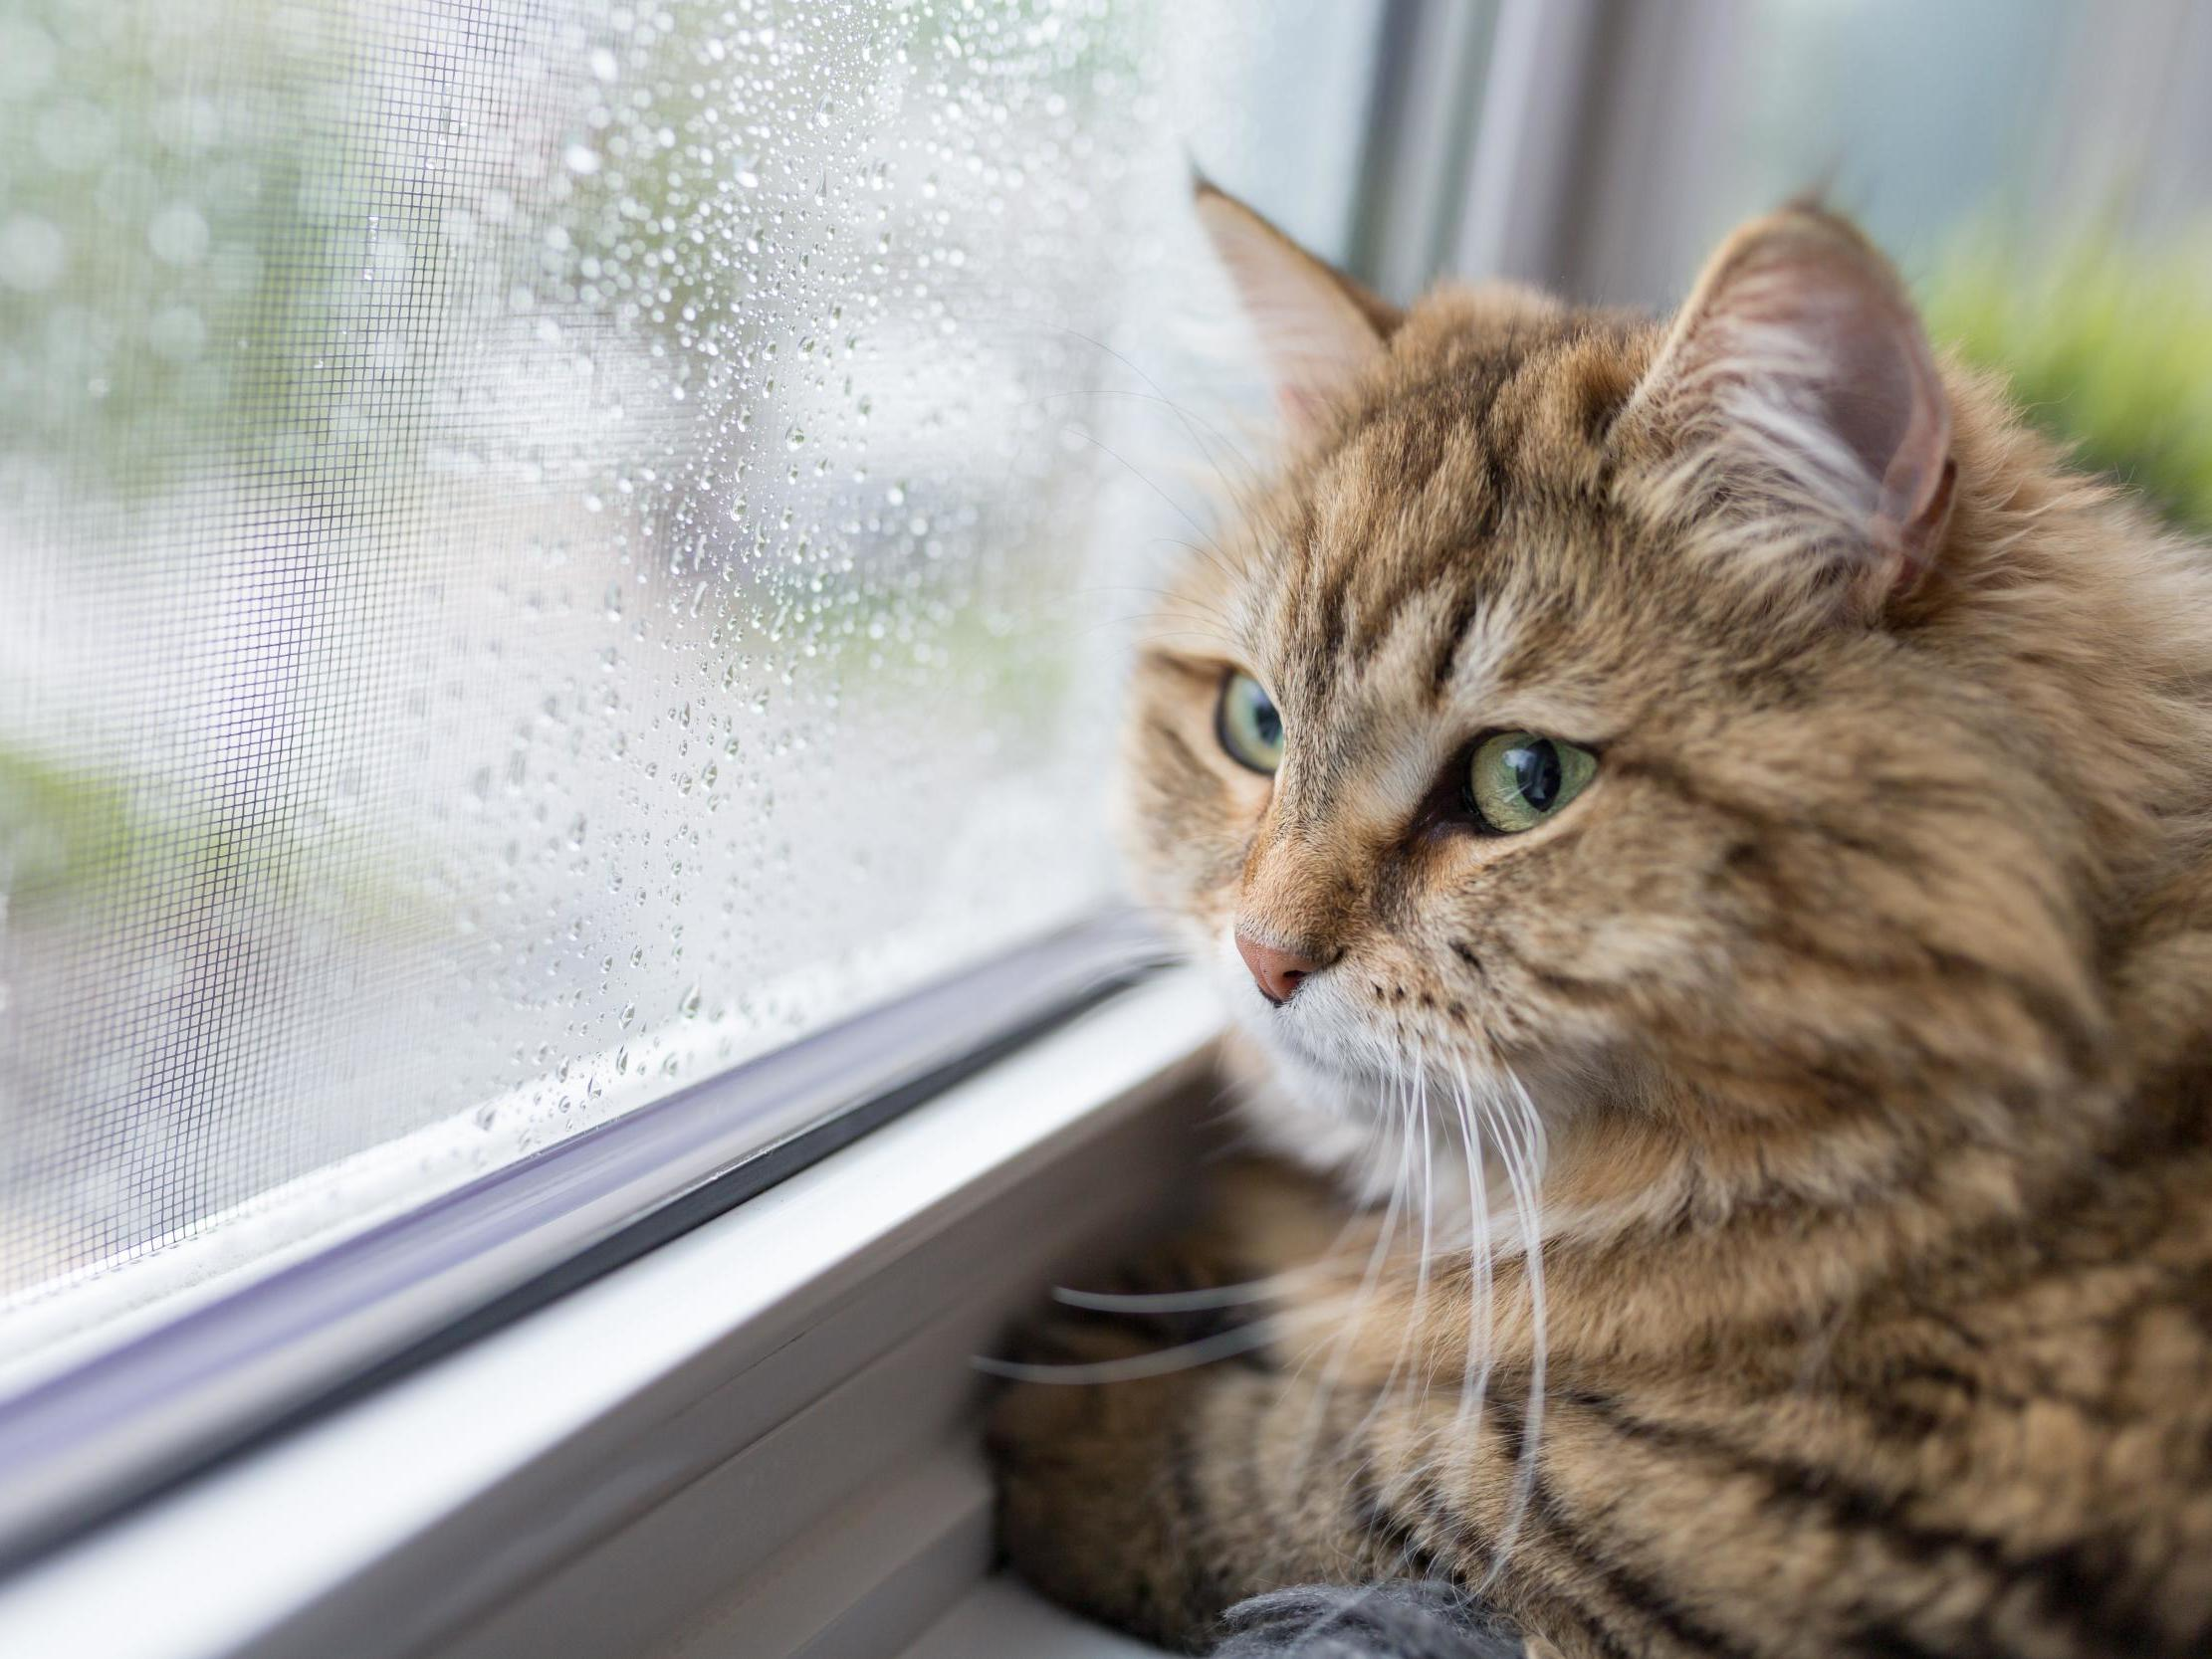 Cats could be banned from going outside under new Australian law